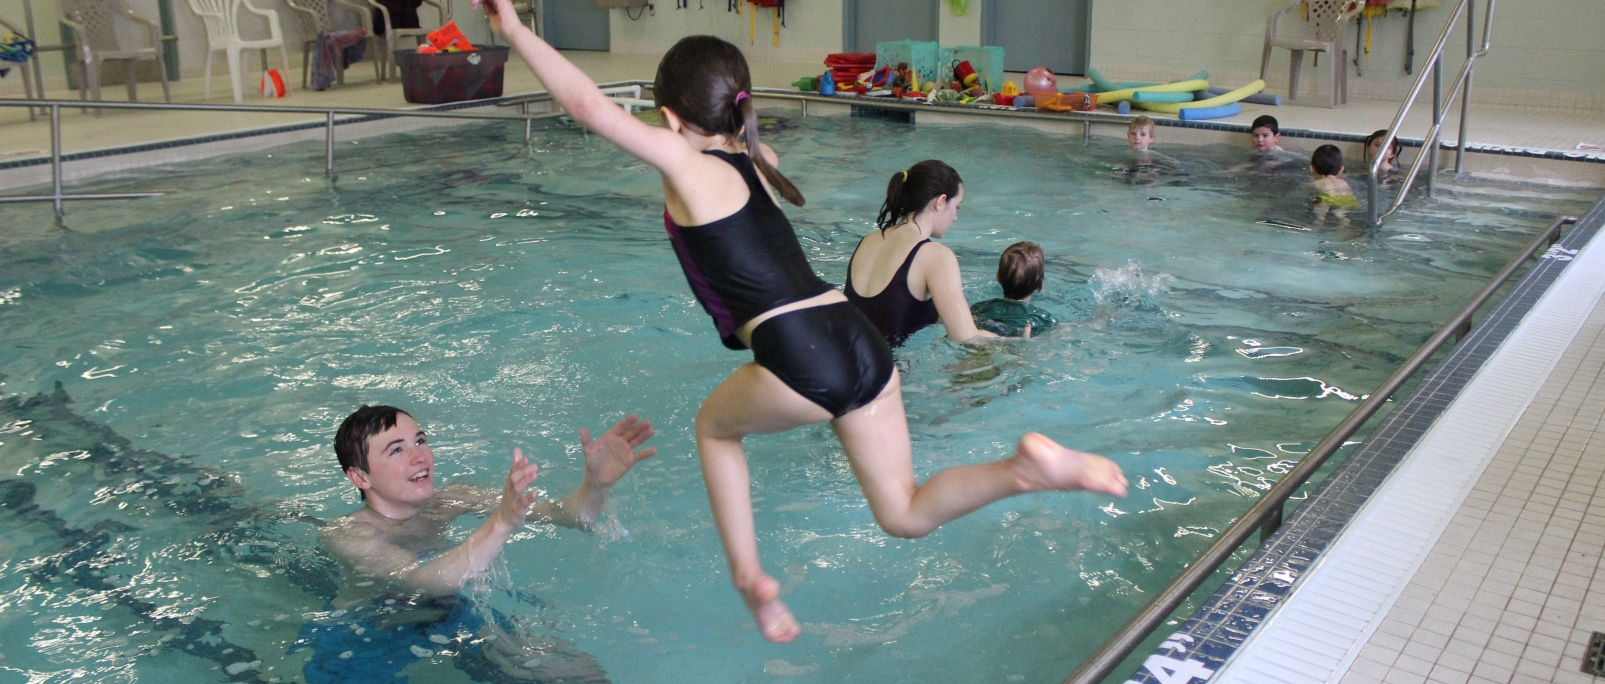 Child leaping into pool